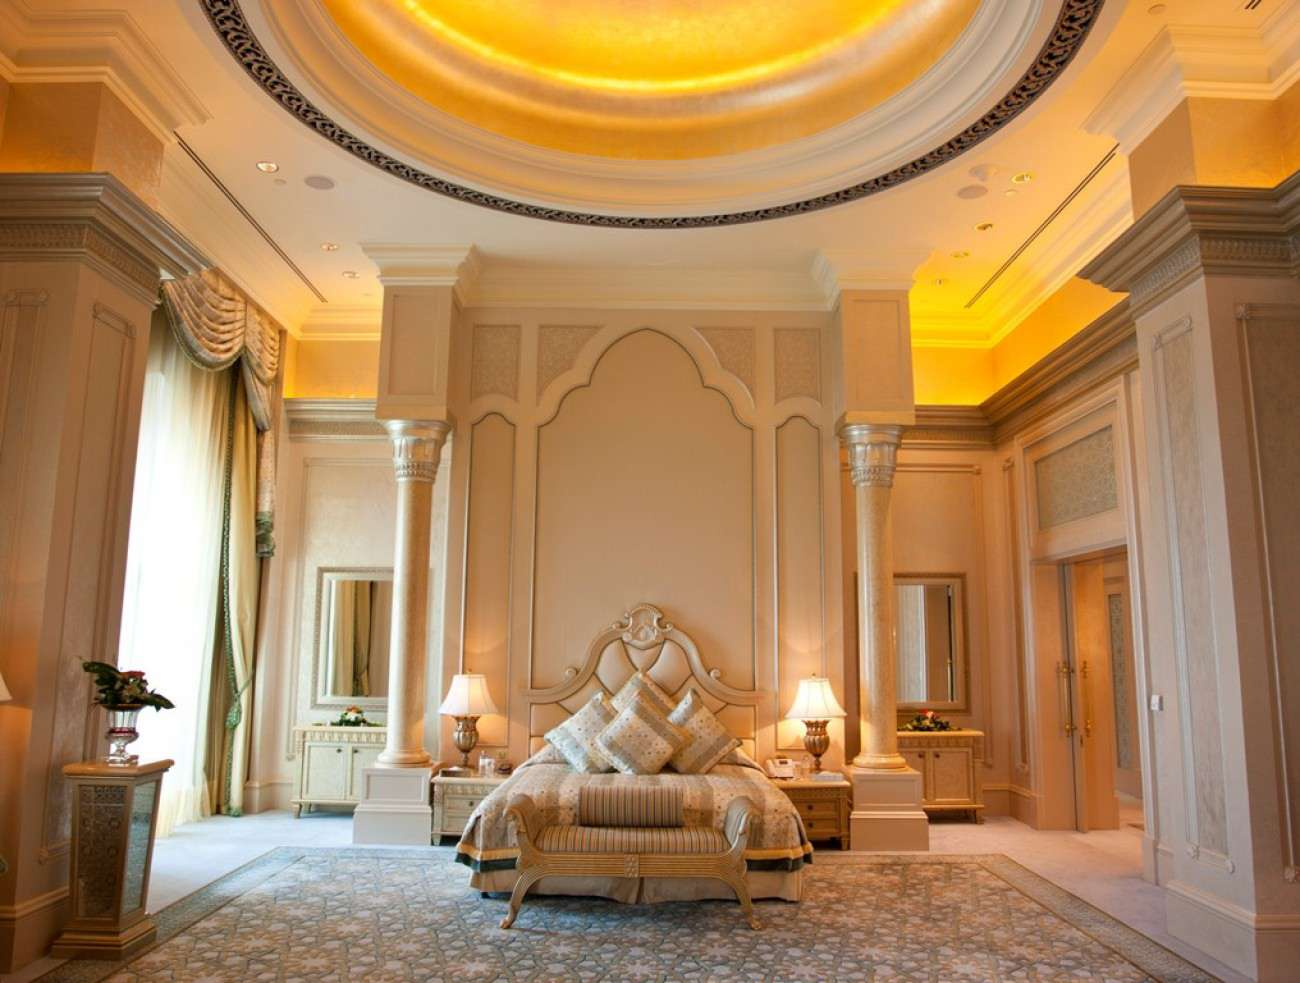 Luxury Hotels Most Magnificent Hotel Suites